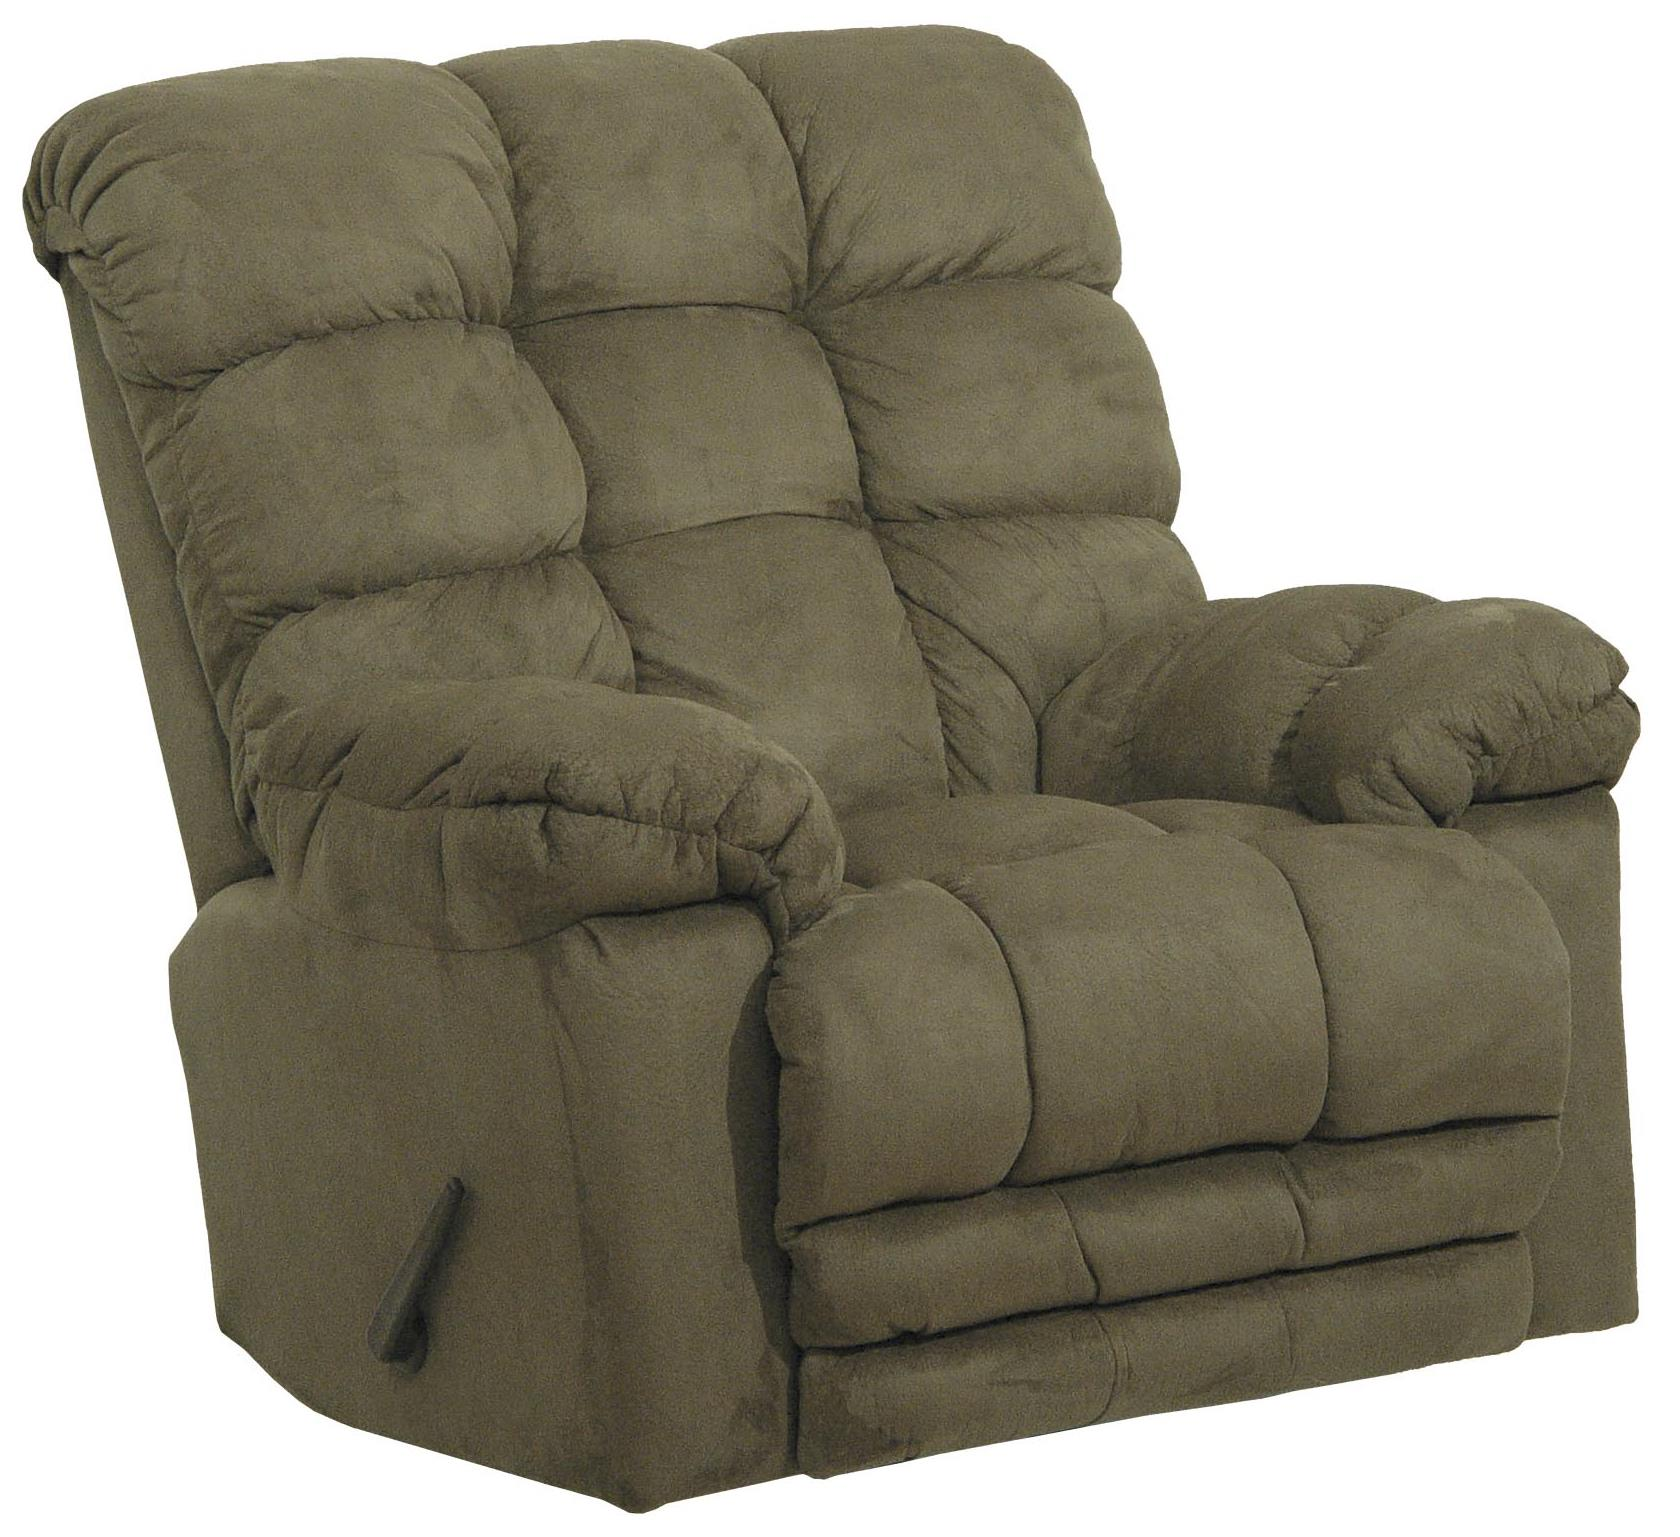 Magnum Chaise Rocker Recliner With Heat And Massage By